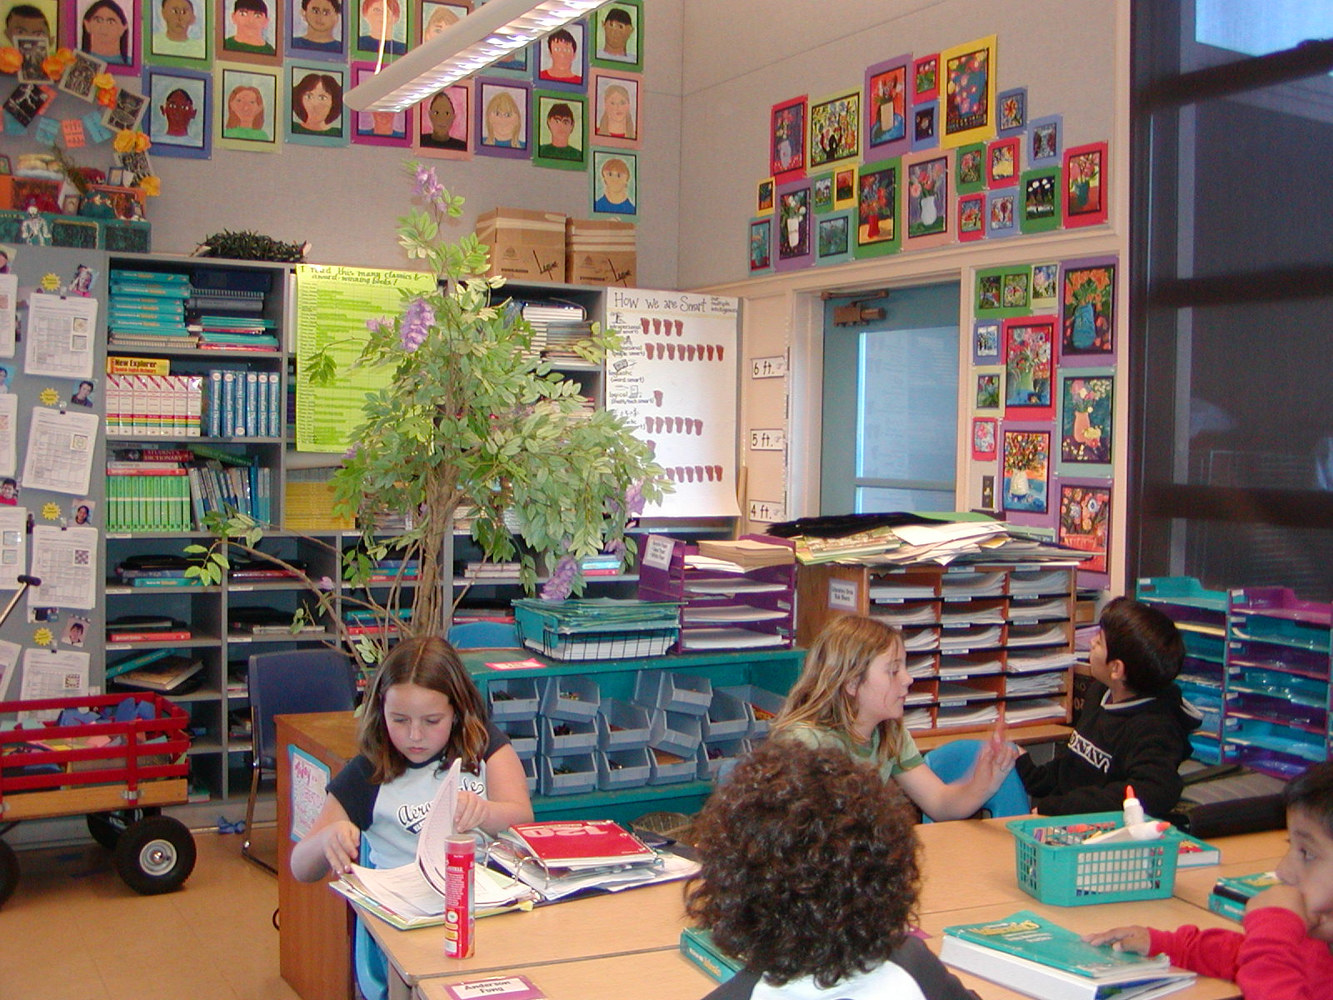 Regular 5th Grade classroom with Art Integrated (1997) by Victoria Avila